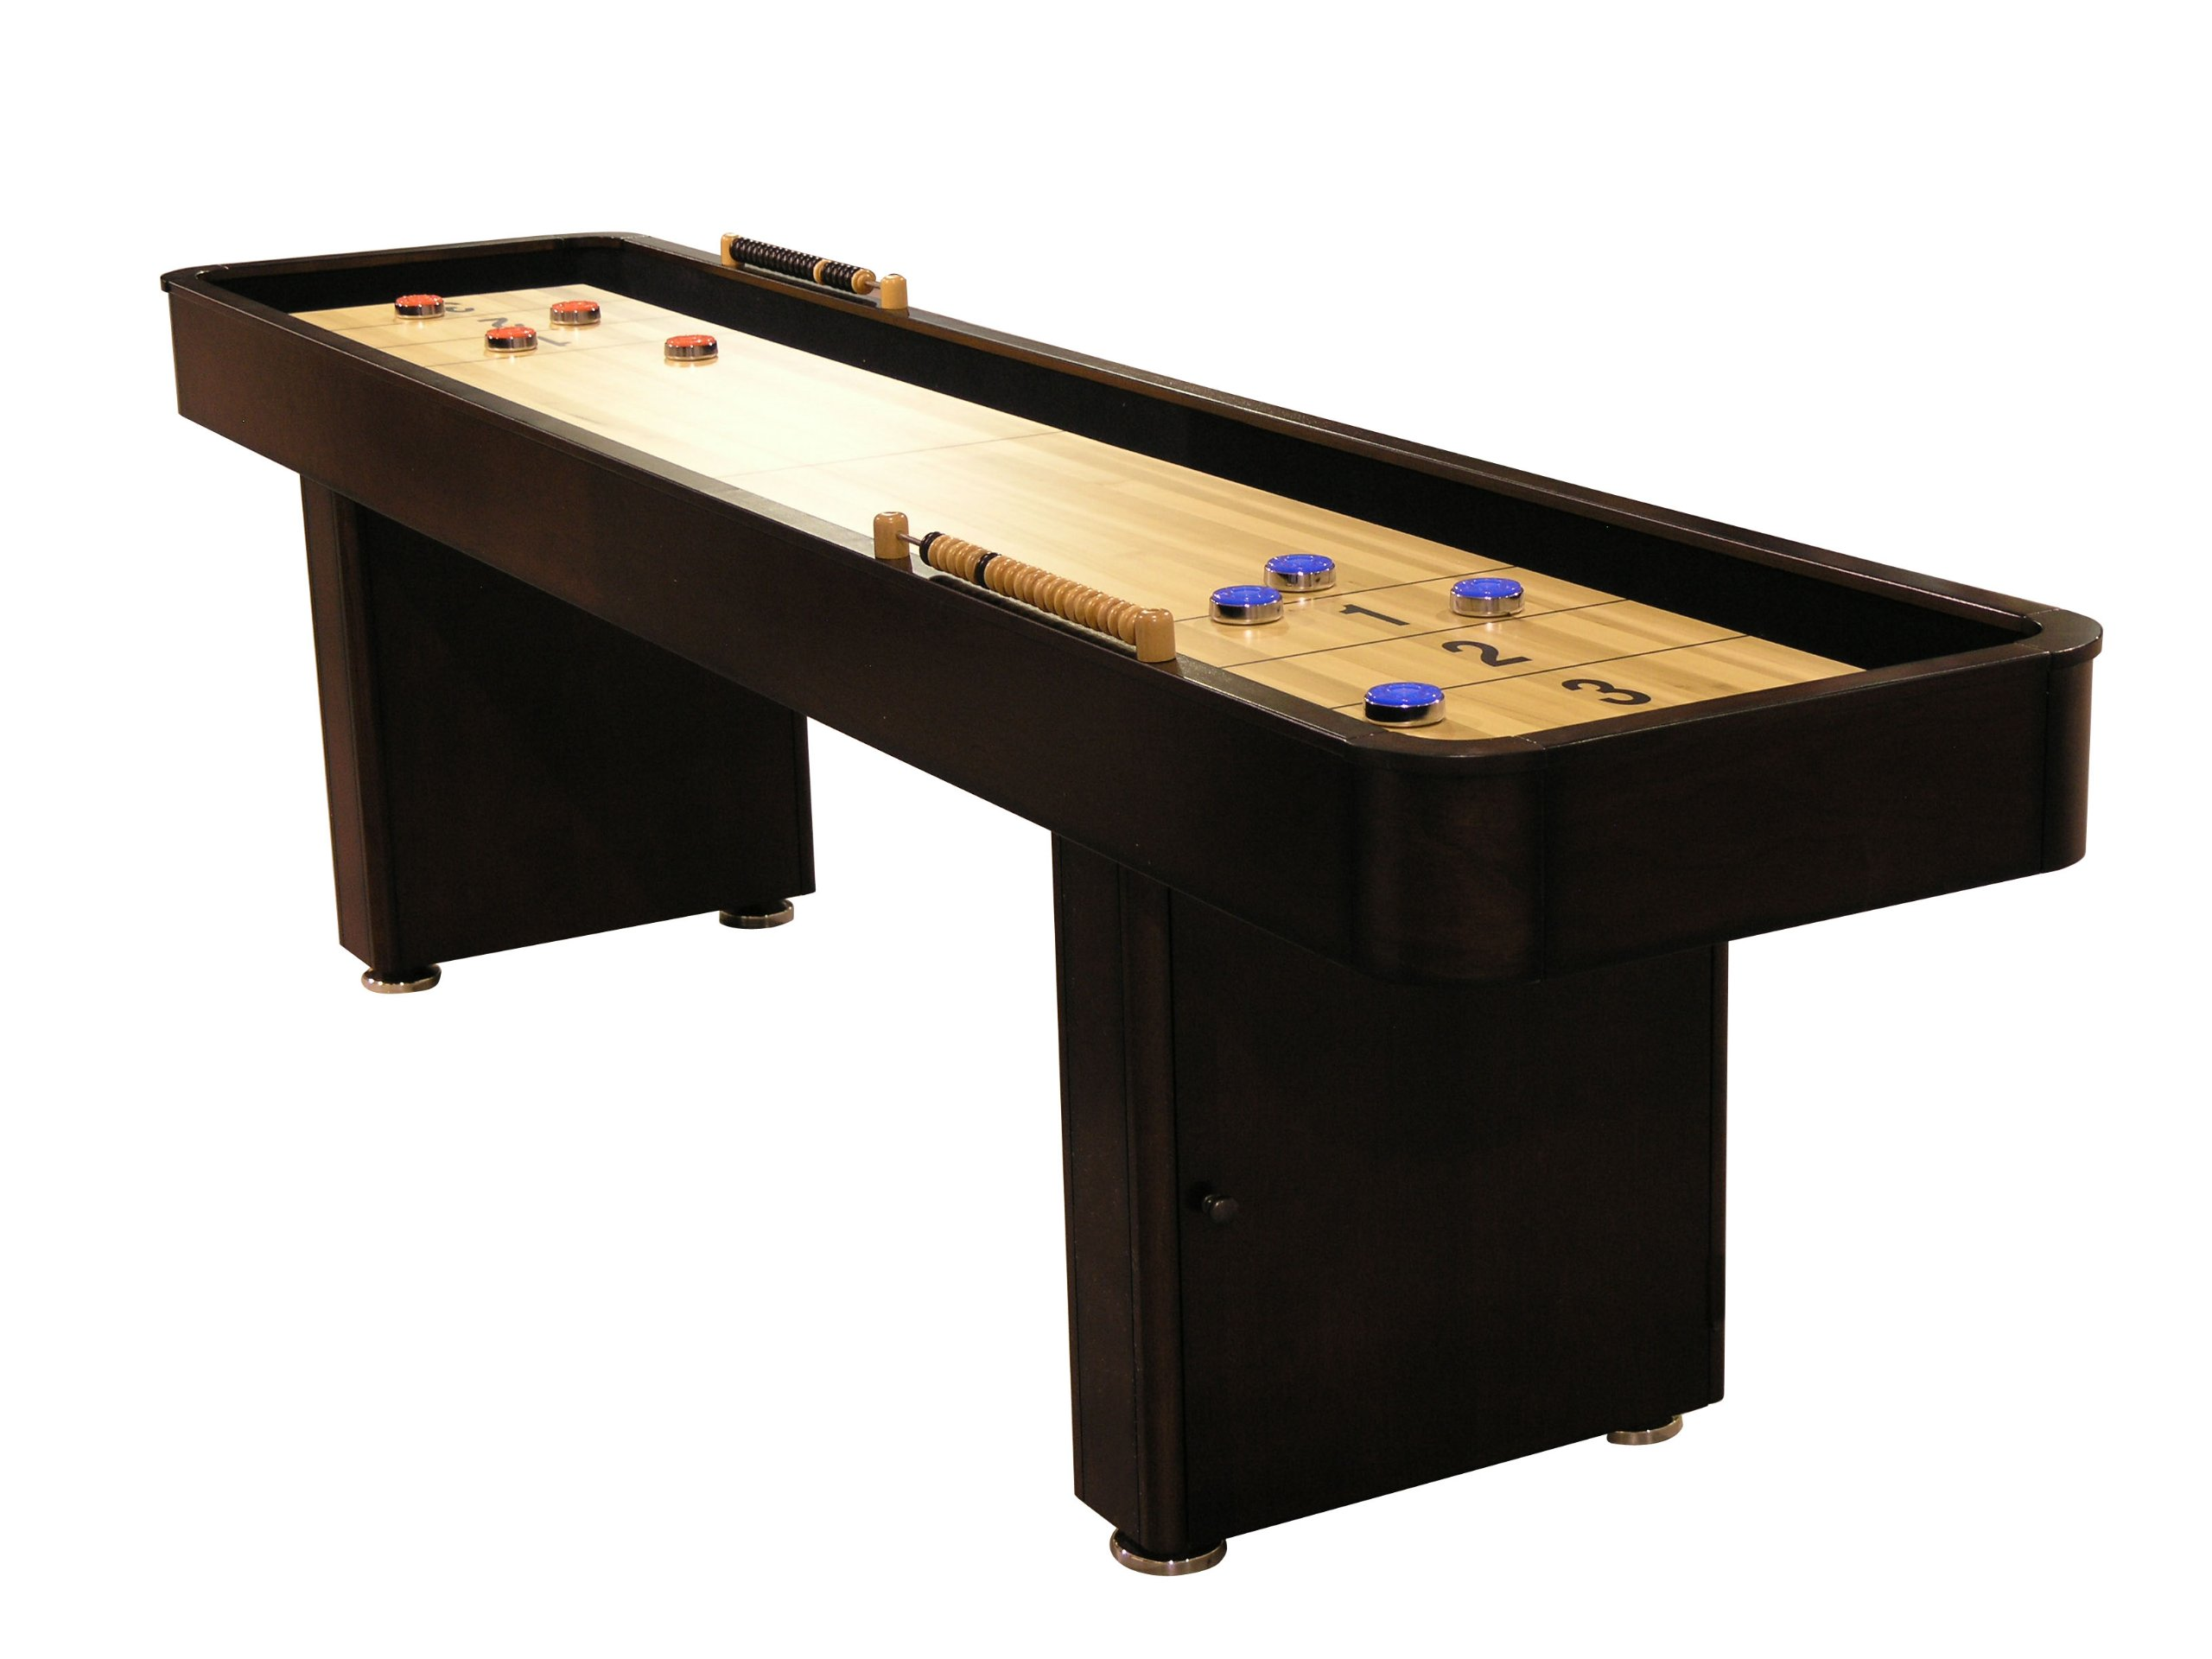 Fairview Game Rooms 9 Foot Shuffleboard Table with Hidden Storage Cabinet - Mahogany by Fairview Game Rooms